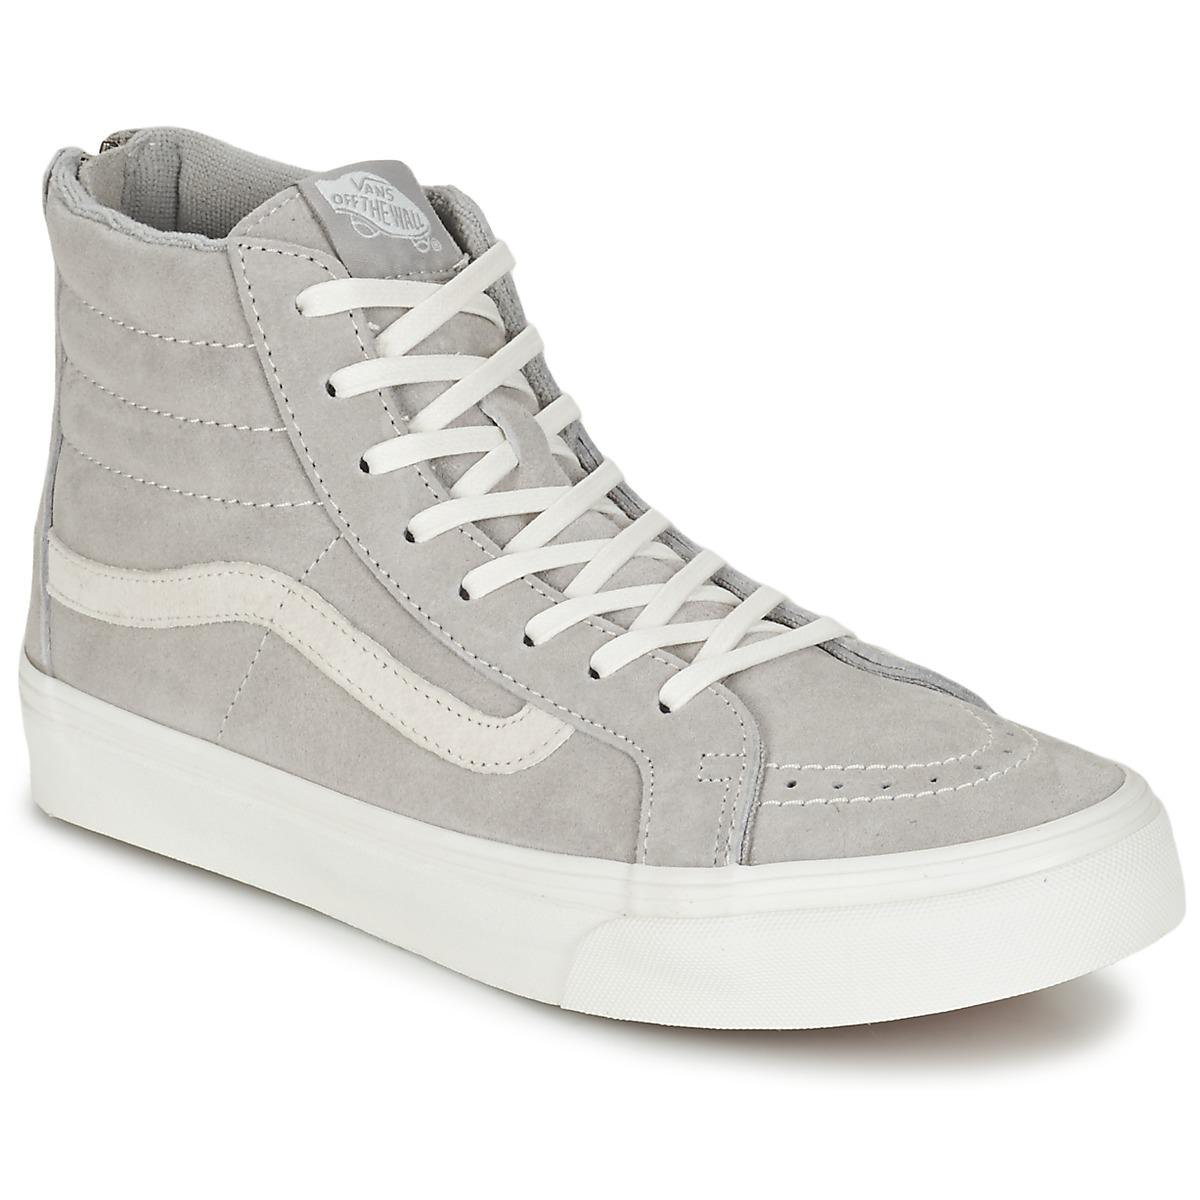 8e7e22bb2a4852 Vans - Gray Sk8-hi Slim Zip Women s Shoes (high-top Trainers). View  fullscreen